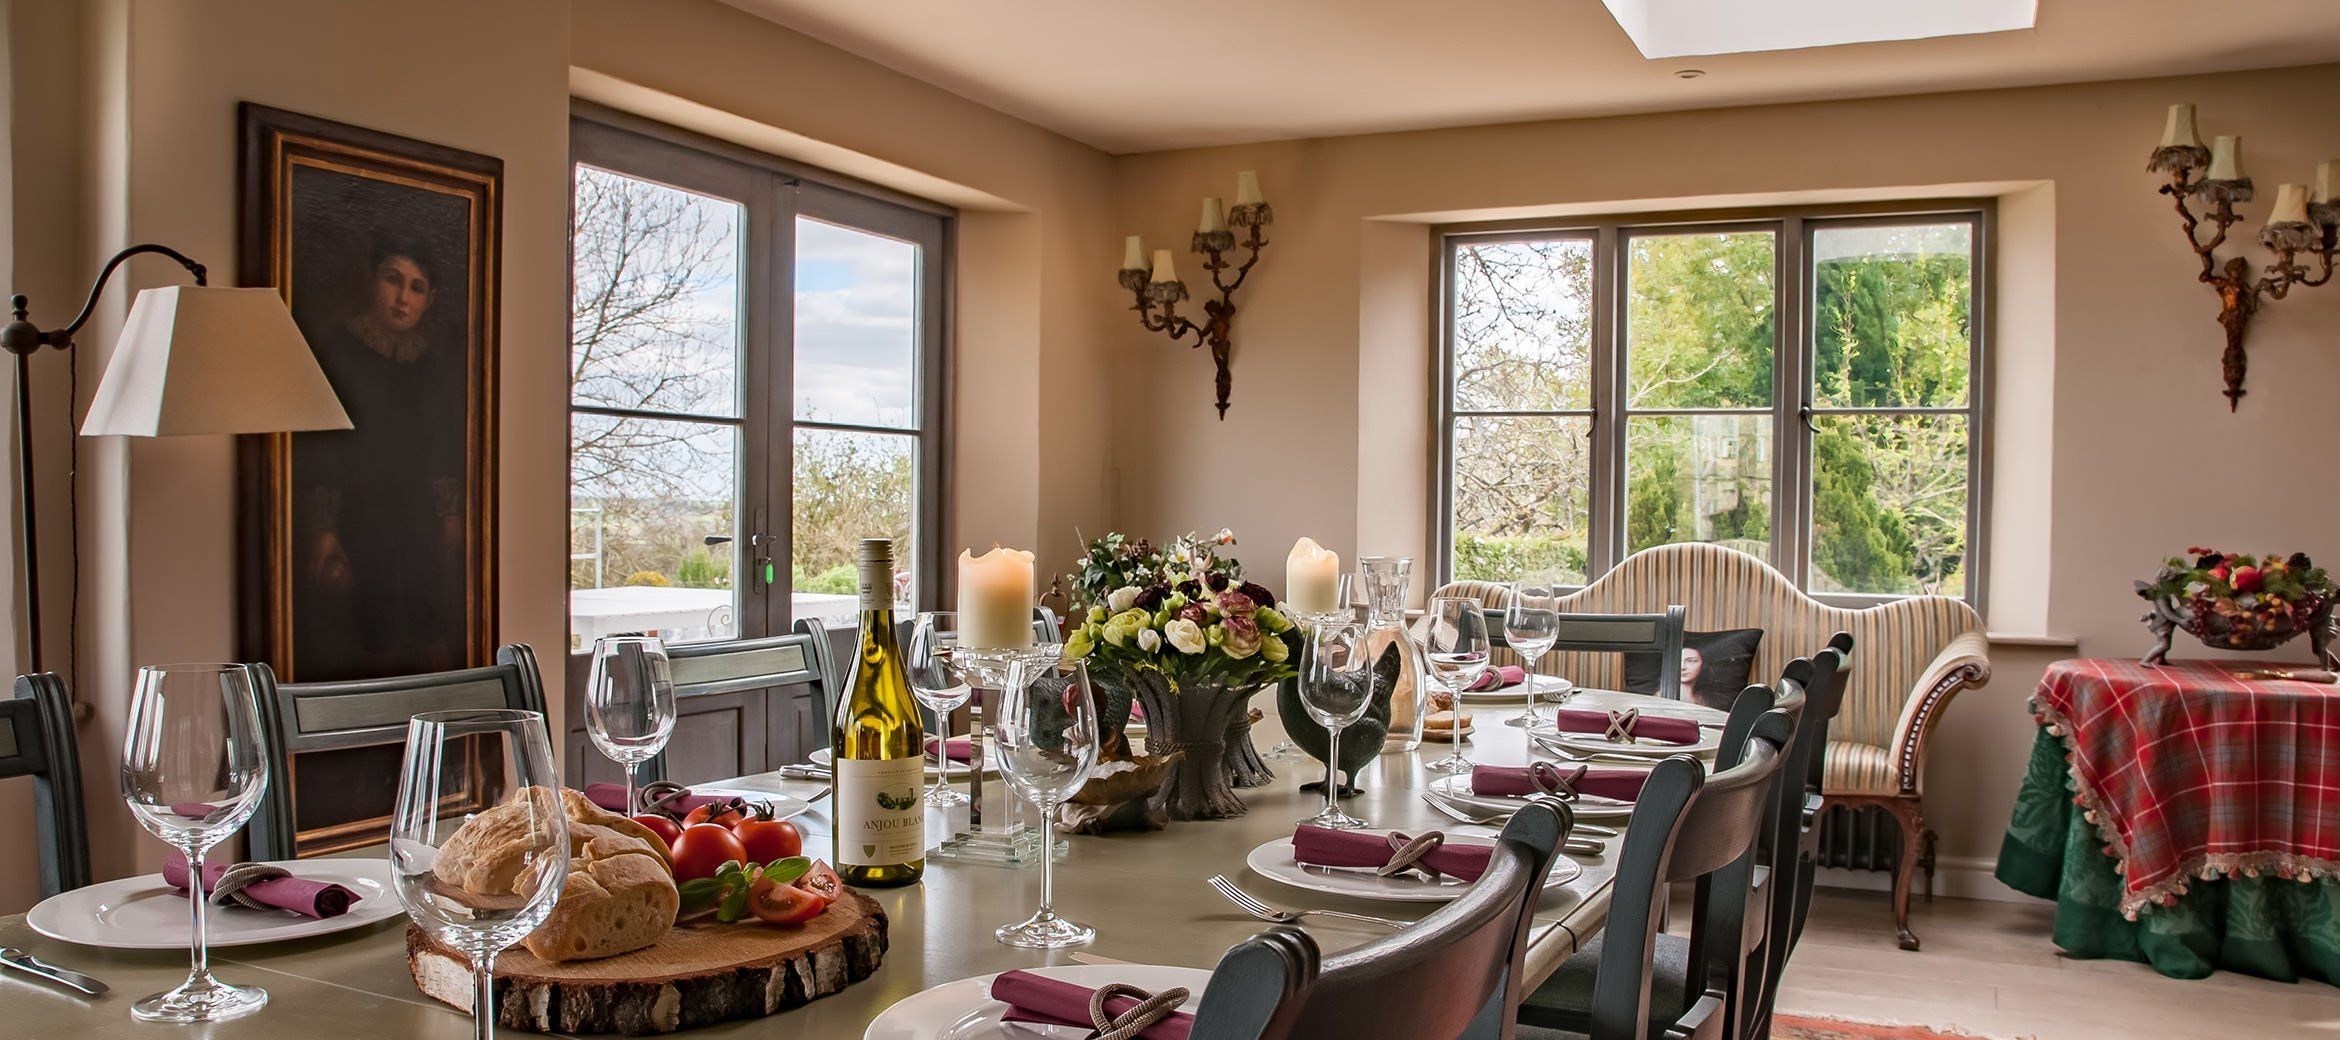 Sixpenny Cottage Luxury Cotswold Rentals Luxury